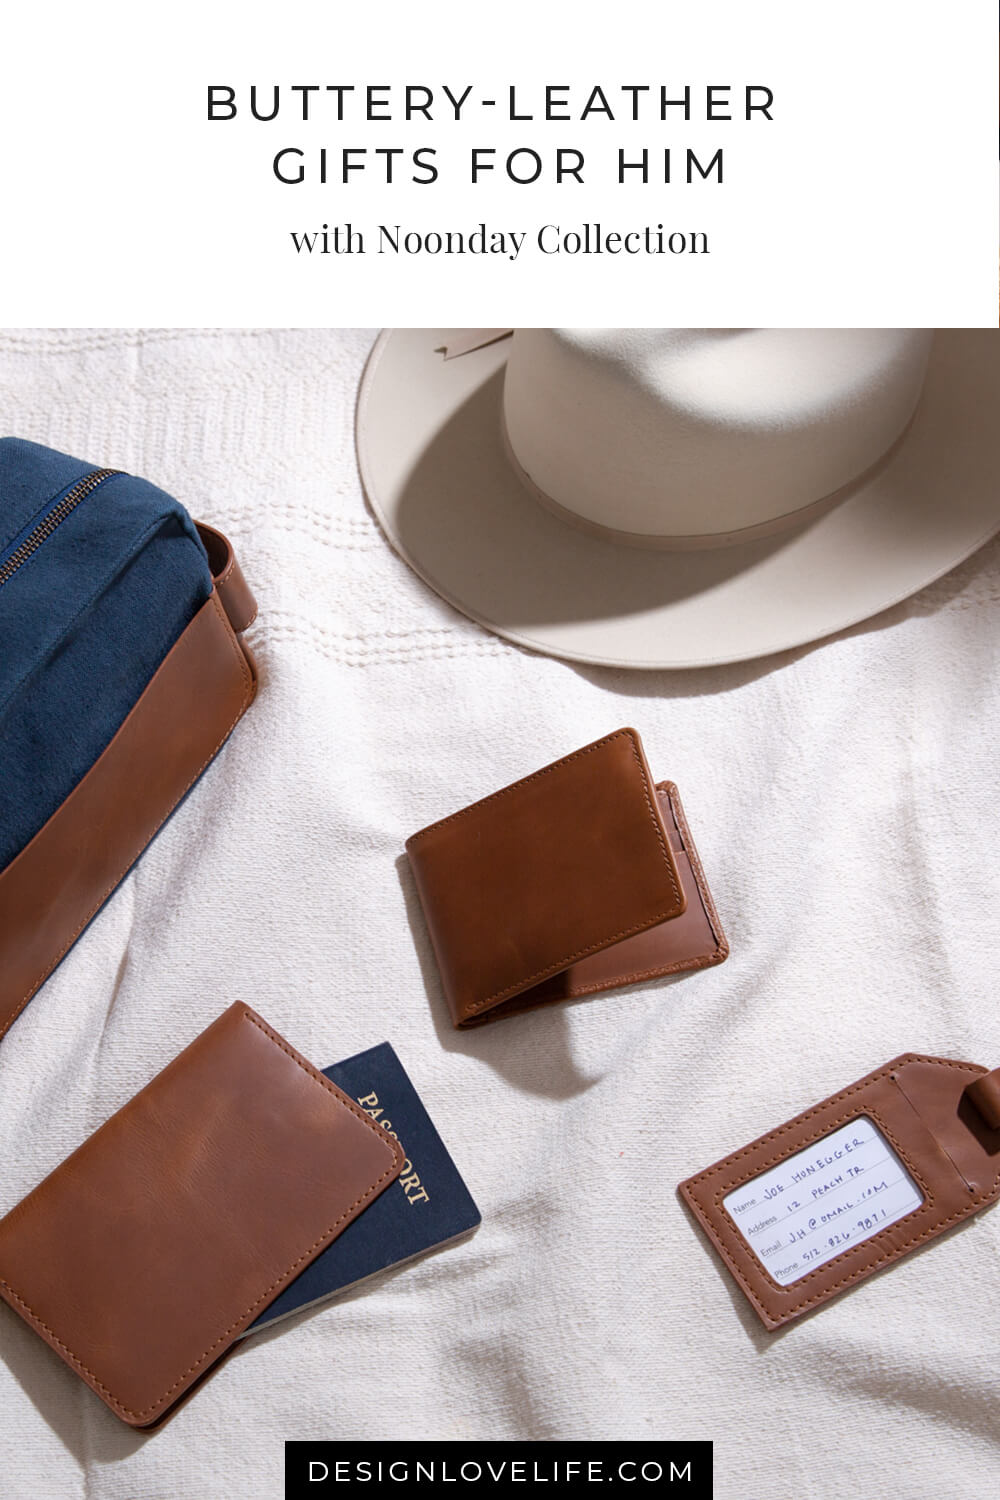 A sophisticated mens line filled with buttery leather pieces for all for your mans travel needs. Noonday collection Winter Collection for Christmas and the Holidays support Artisans around the world. Noonday Collection and Annie Johnson.